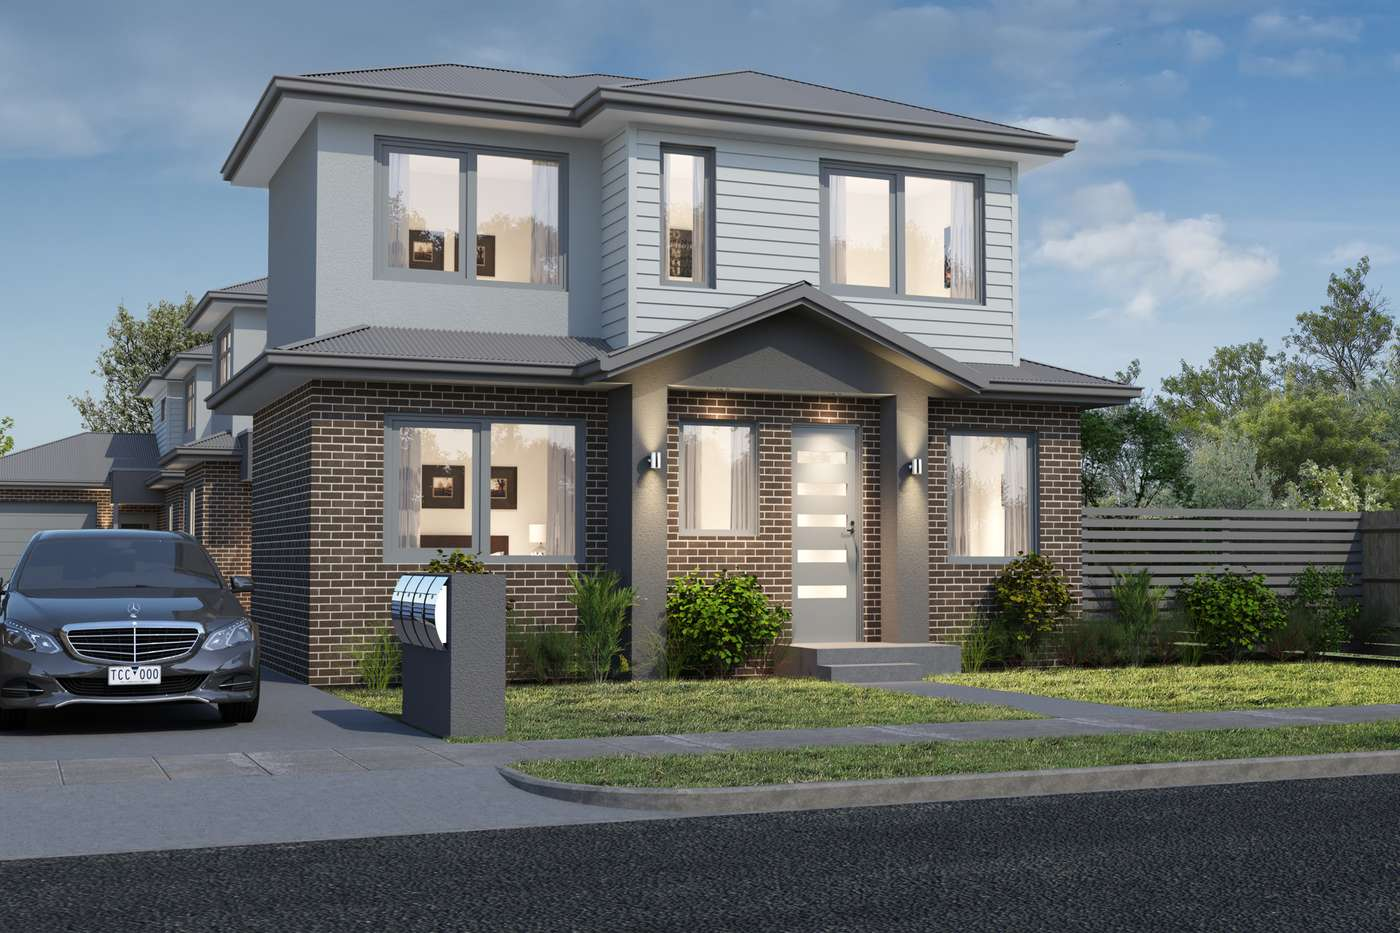 Main view of Homely townhouse listing, 1-4/18 Jessie Street, Oak Park, VIC 3046